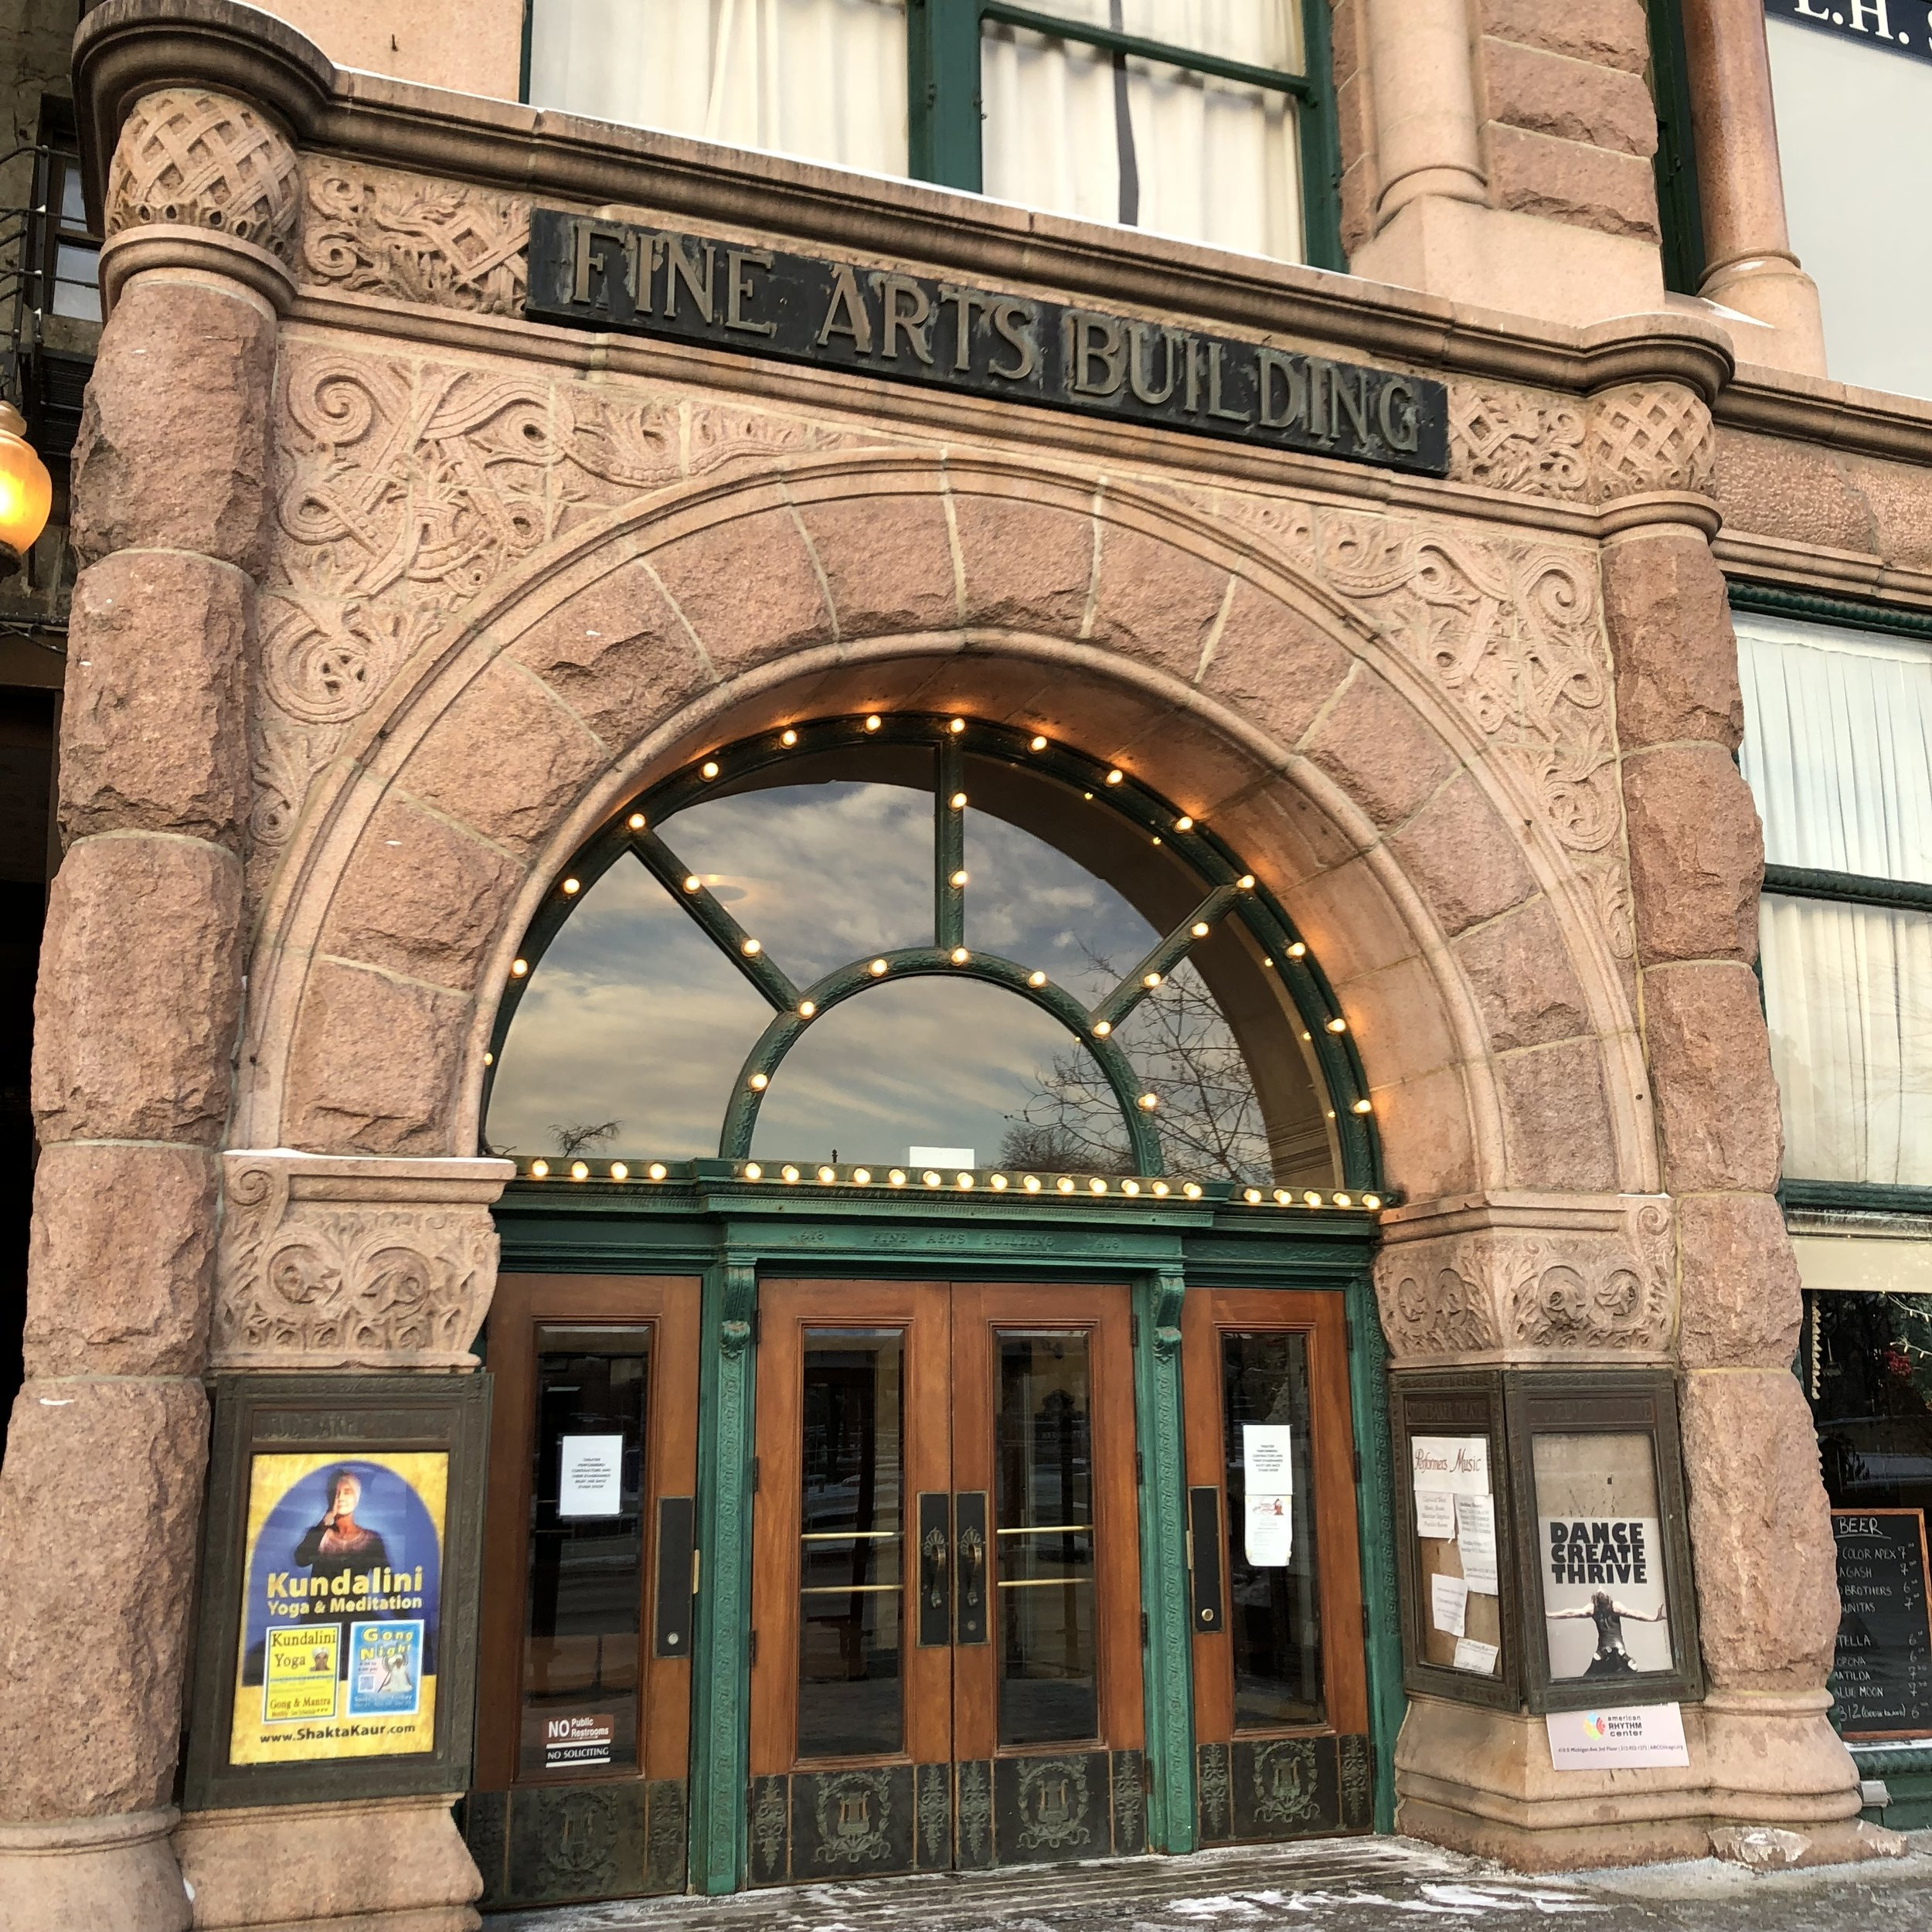 The Fine Arts Building at 410 South Michigan Avenue in Chicago is home to several great violin shops and dealers.